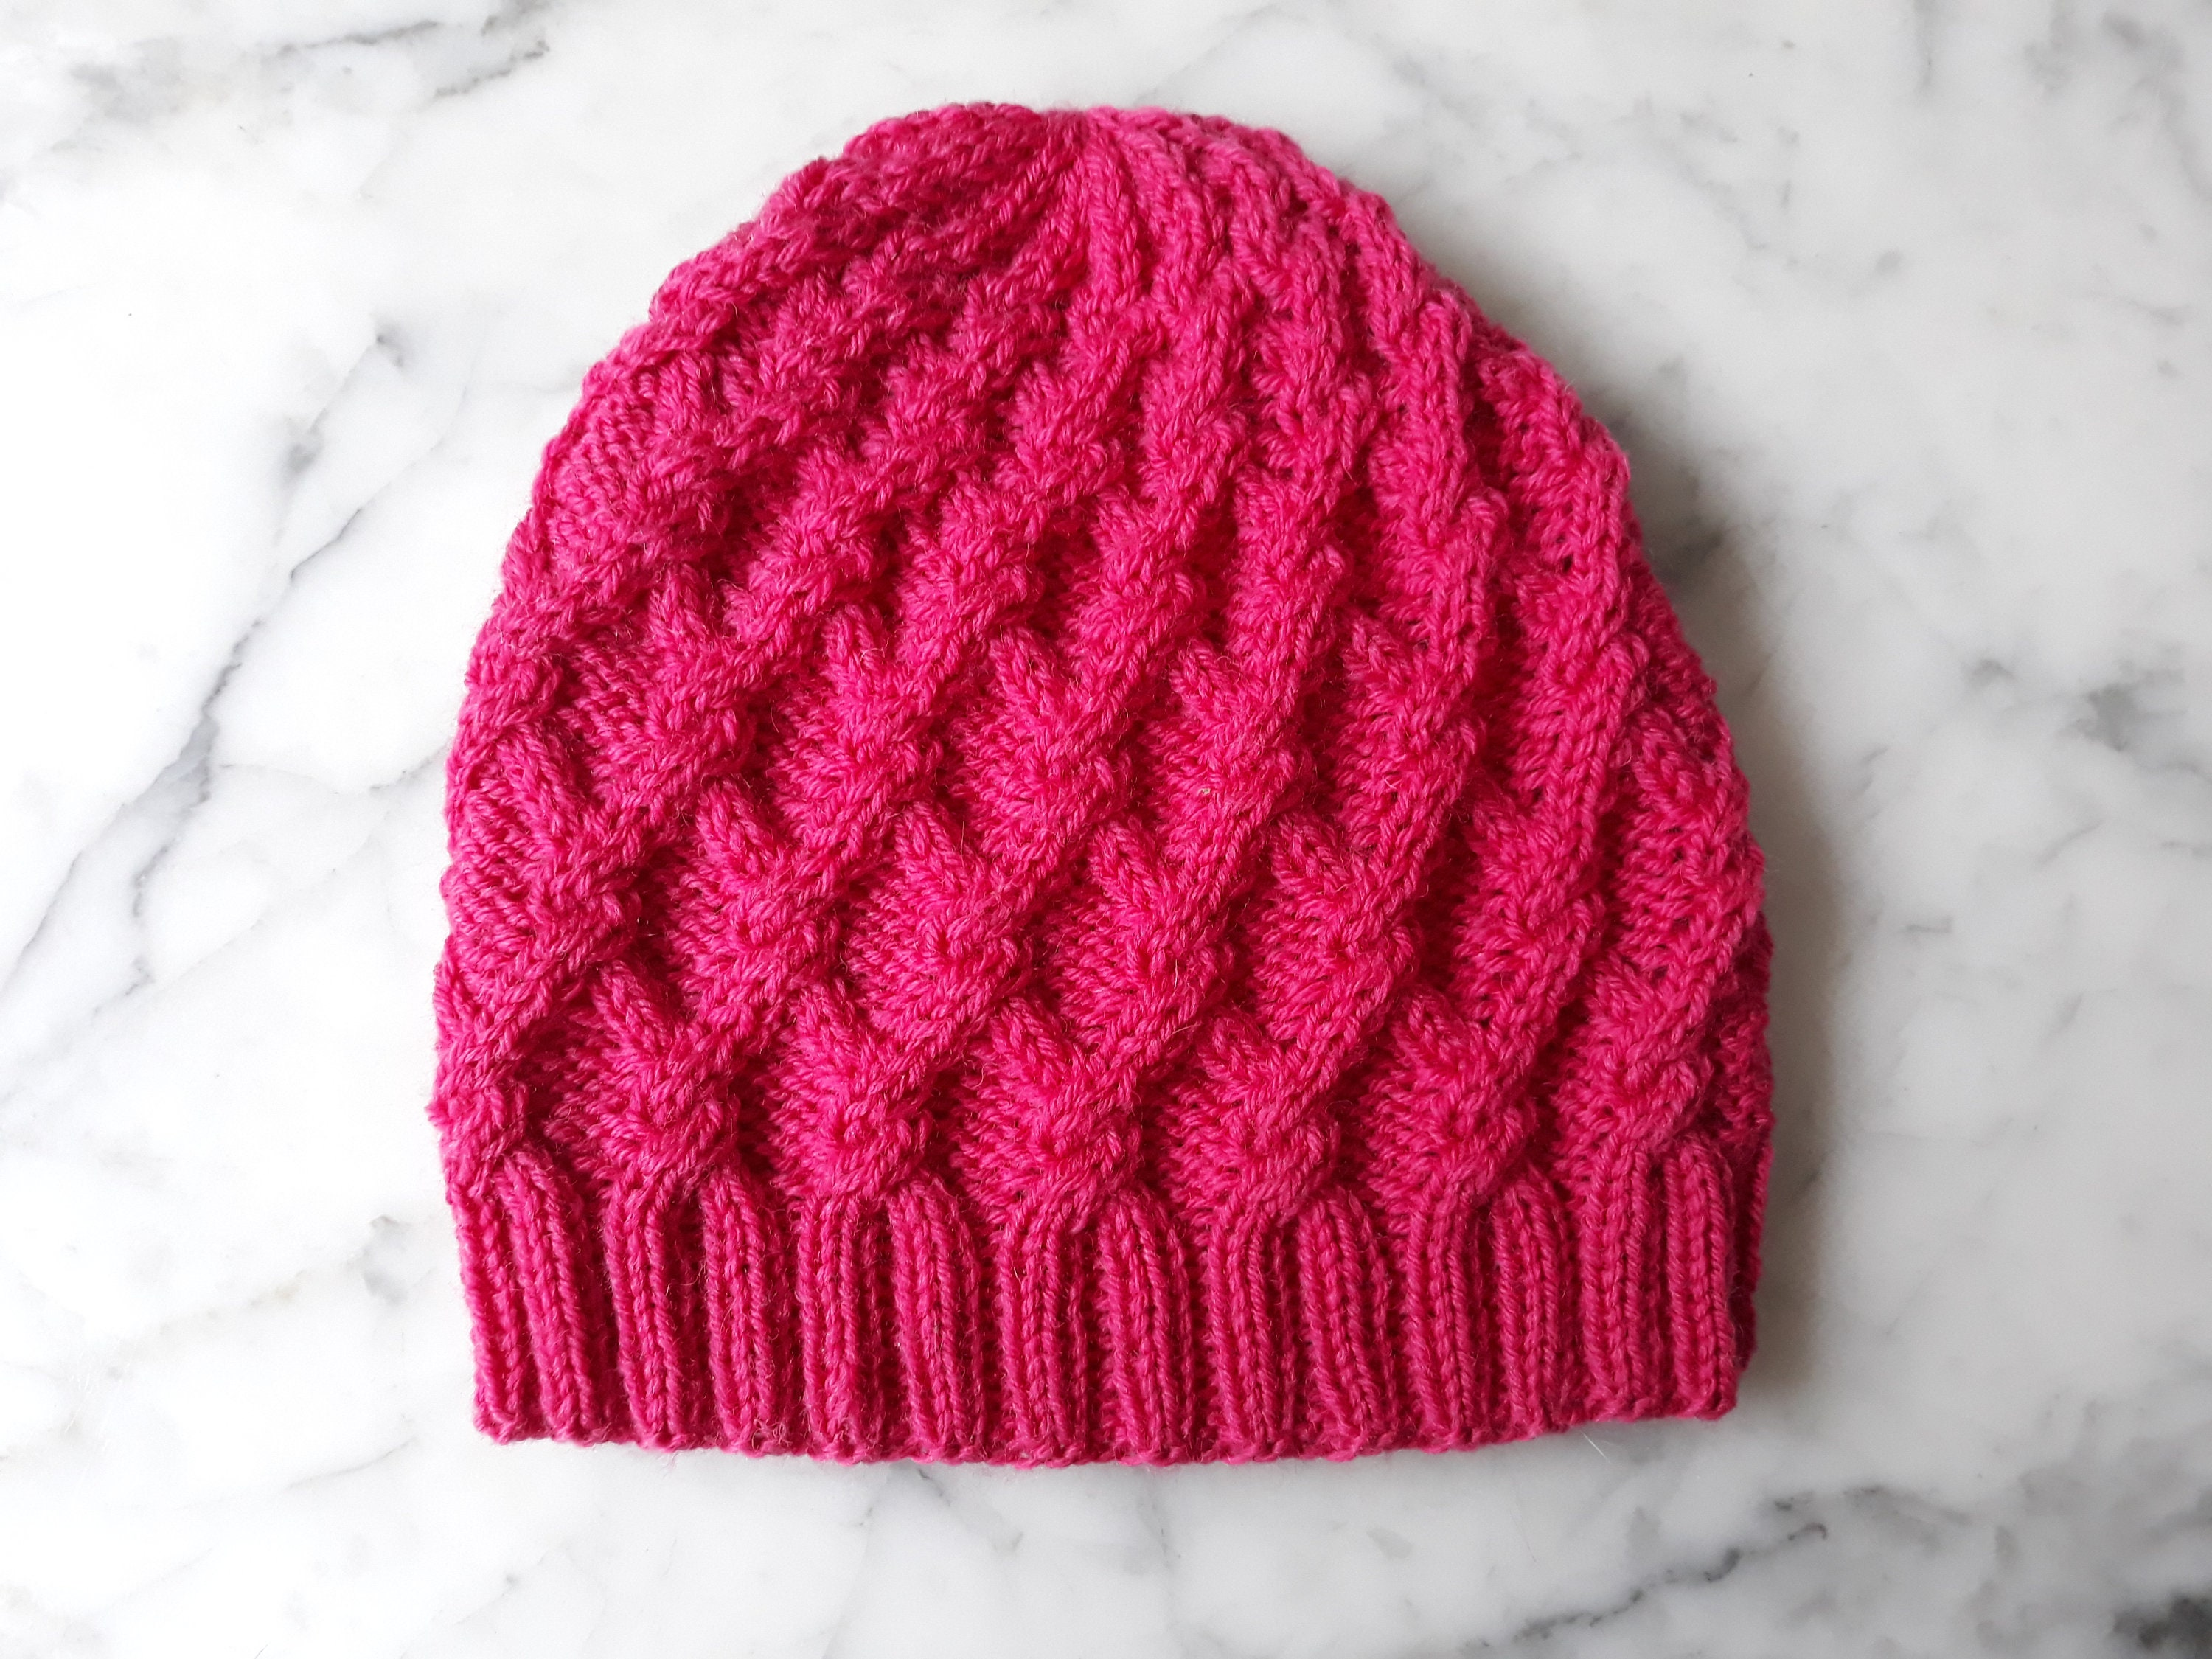 e2d51c5ff95 Cable knit beanie  handknit hat in merino wool. Pink knit beanie hat ...